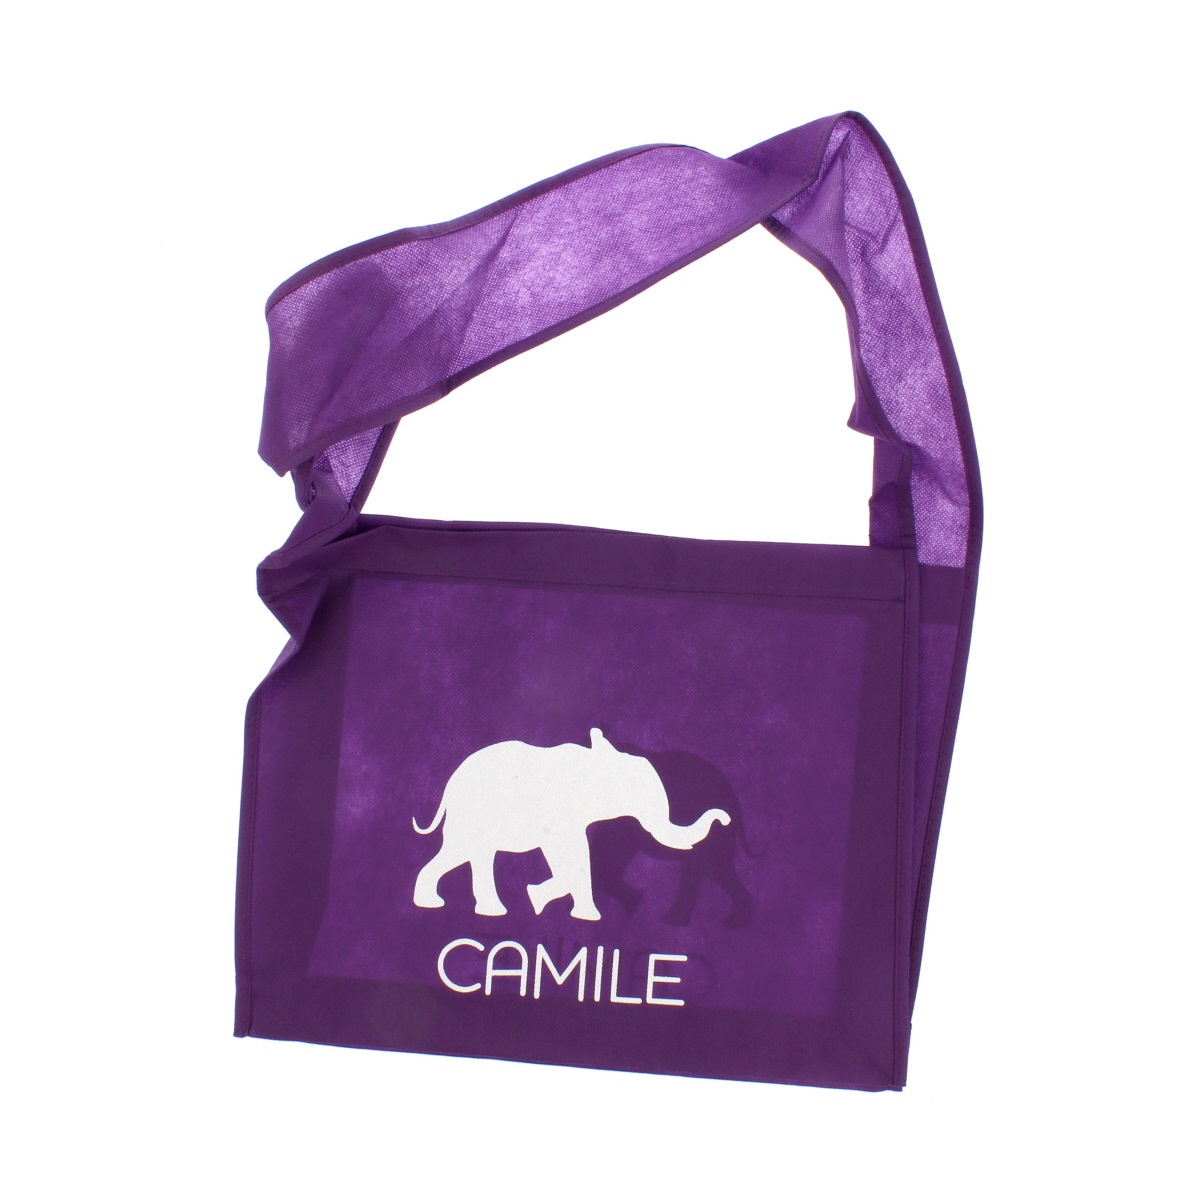 Camile Thai Bag